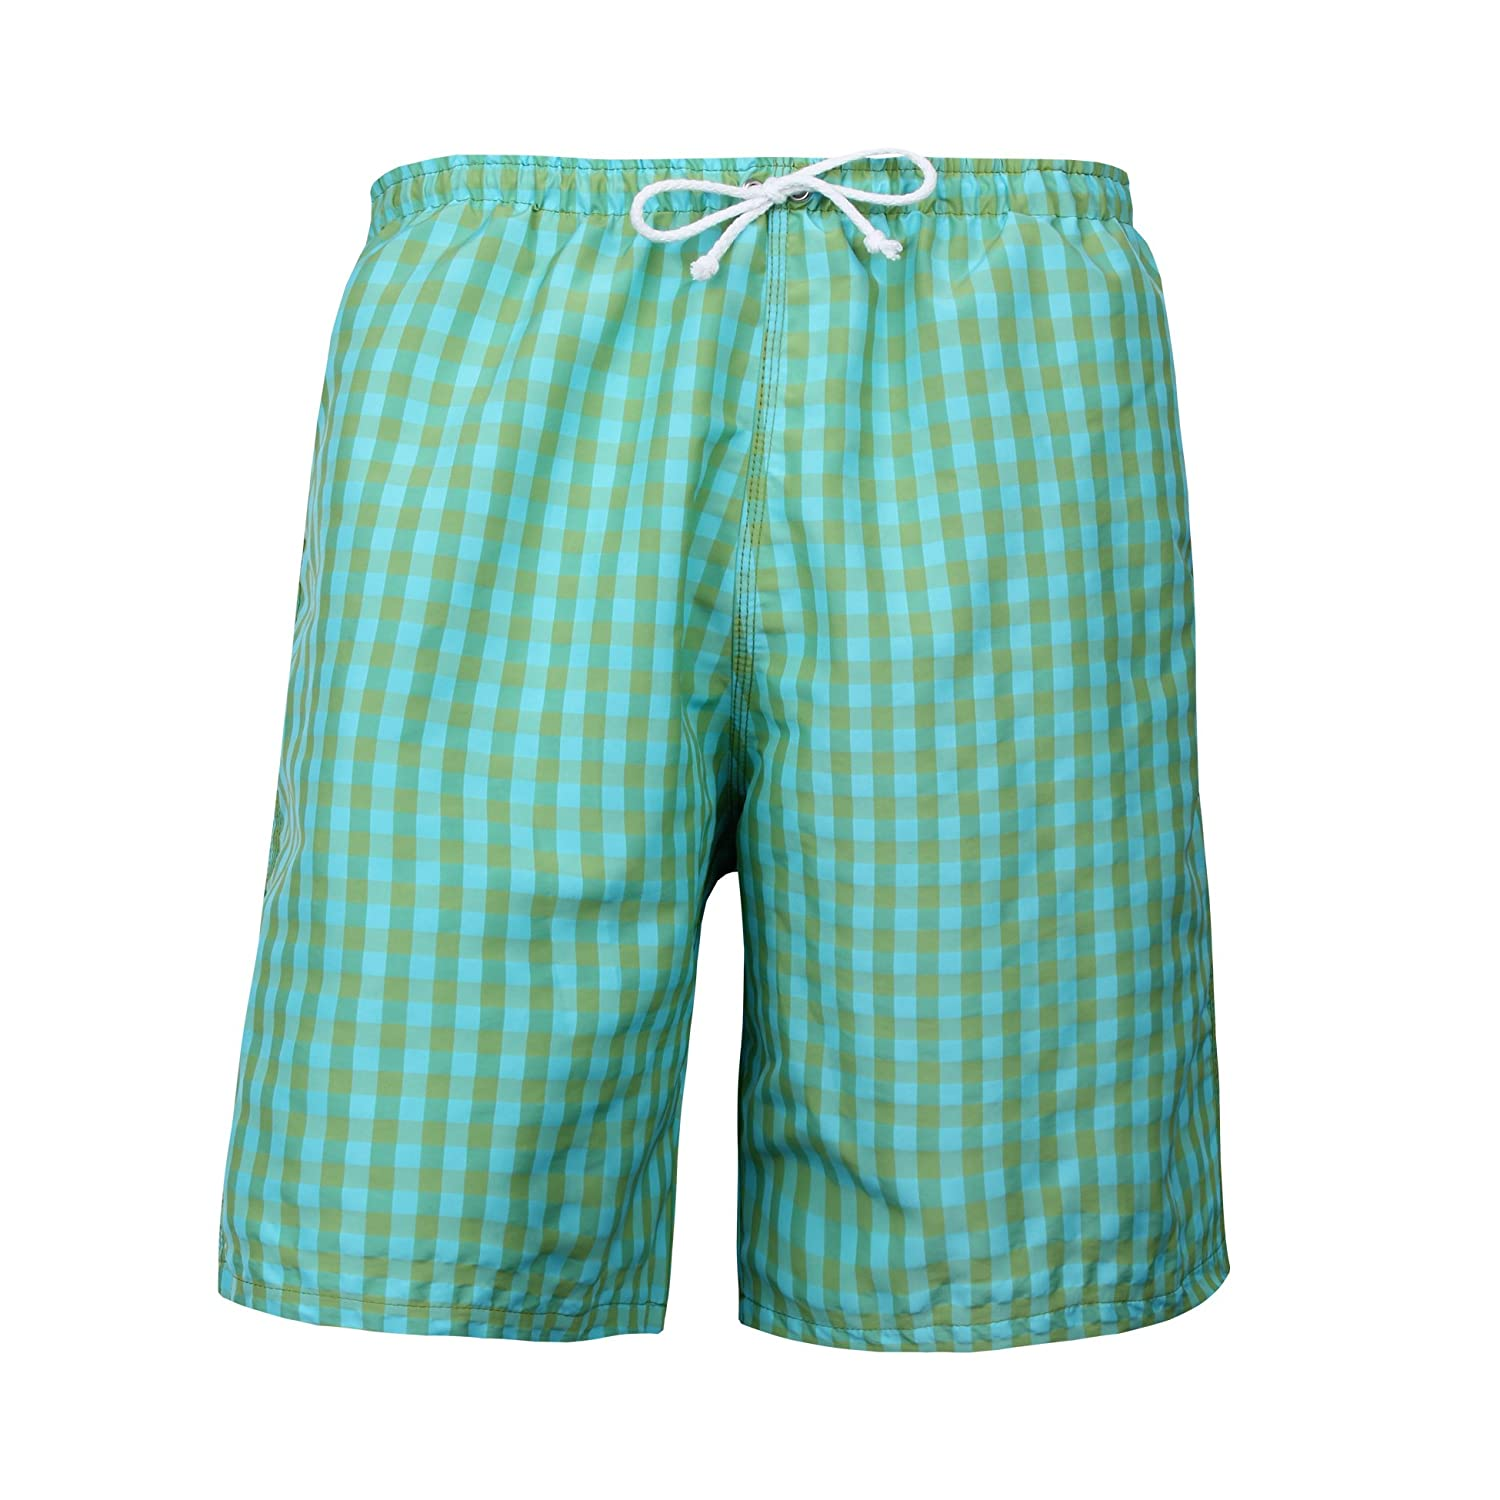 Puuper Leander Men's Swimming Shorts Chequered Green / Blue